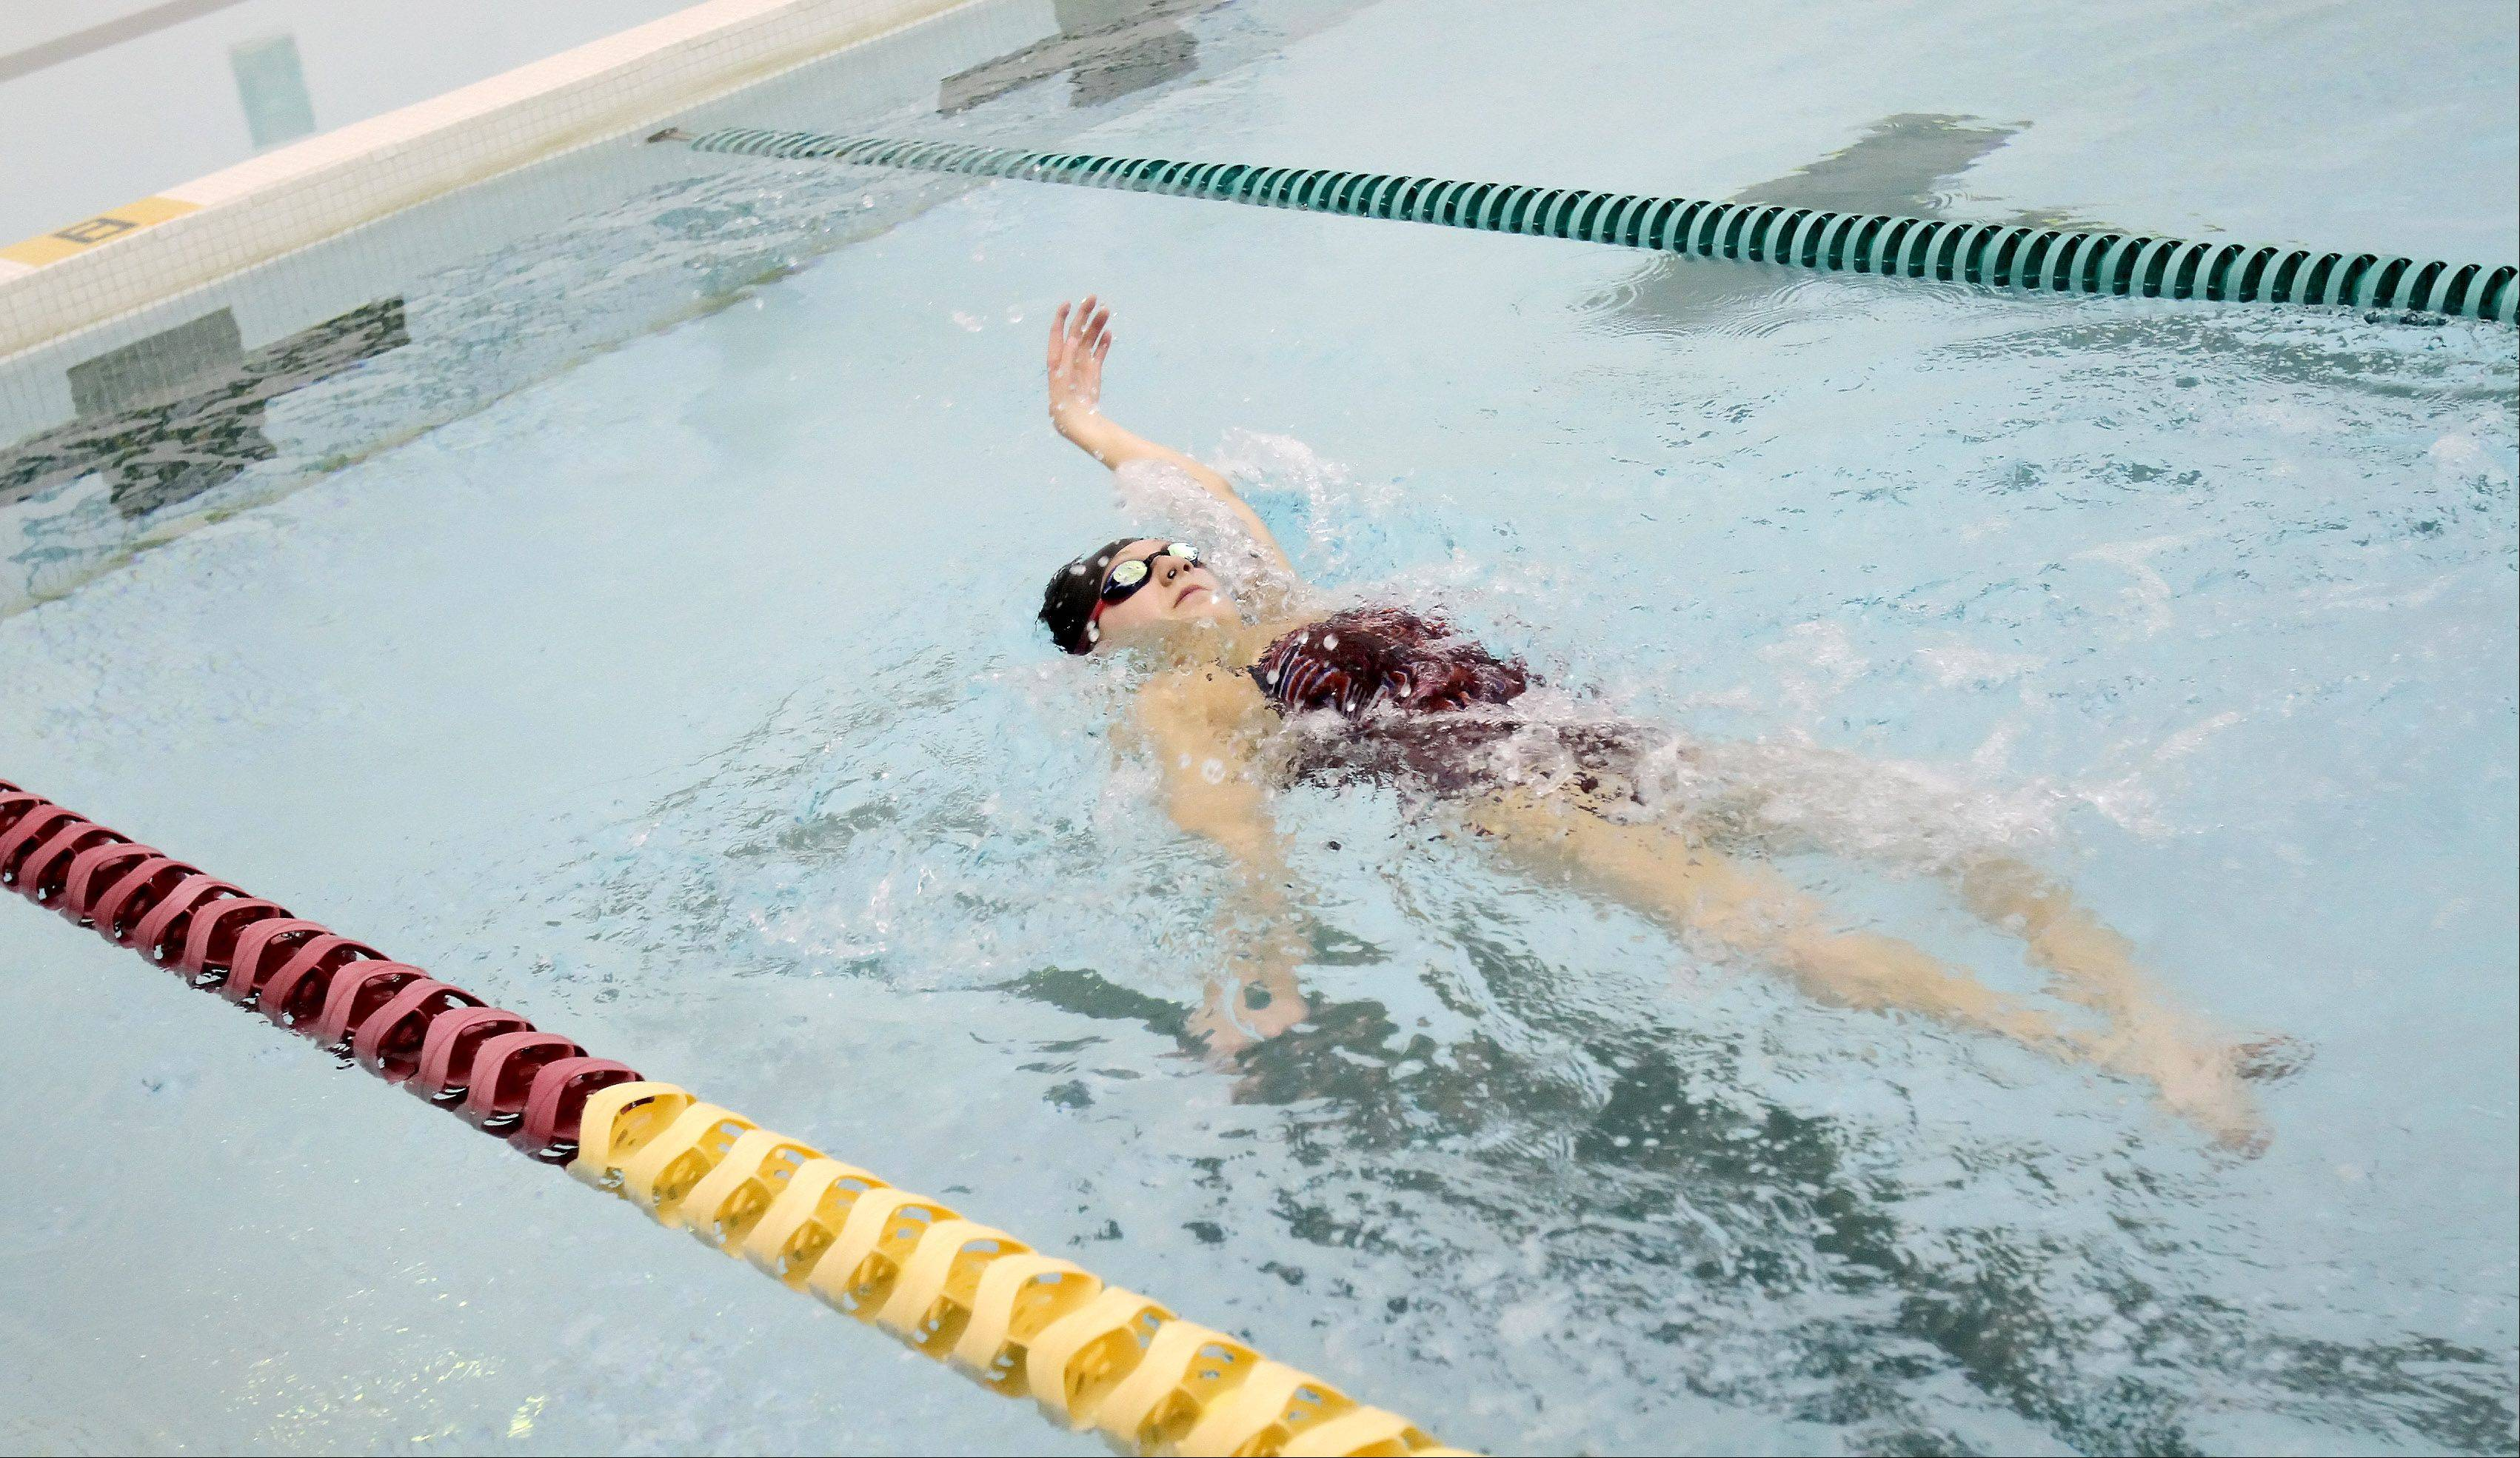 Alyssa Gialamas of Naperville won a bronze medal as part of a 200-meter medley relay team at the International Paralympic Committee World Championships in Montreal. She�s training in hopes of medaling in the next Paralympics in 2016 in Rio de Janeiro.